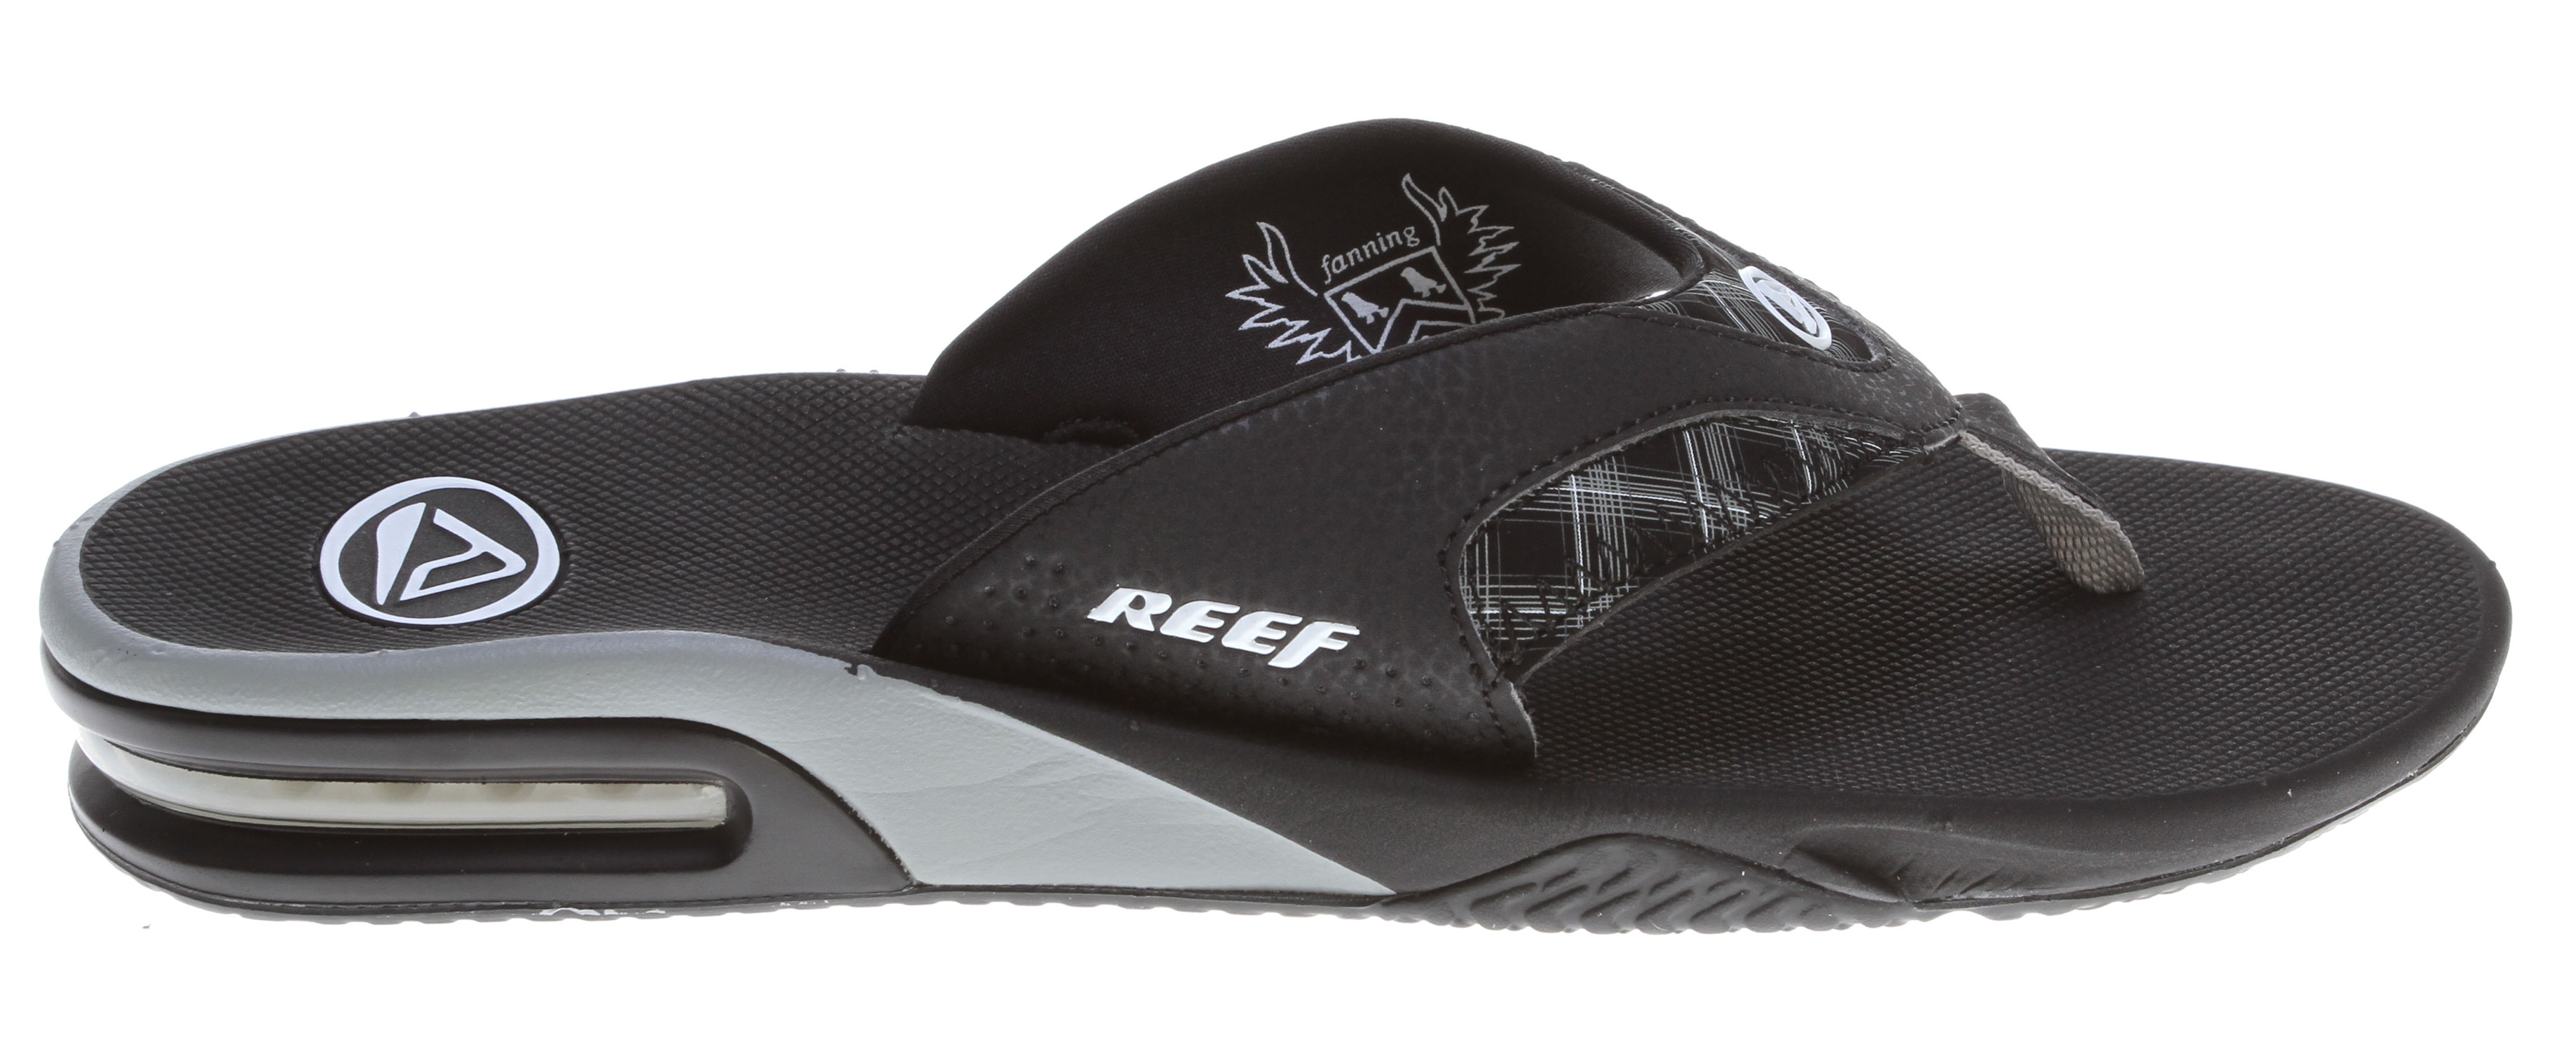 Surf Key Features of the Reef Fanning Sandals: Mick Fanning's signature footwear Guy's Performance Sandal Comfortable, water friendly synthetic nubuck upper Contoured compression molded EVA footbed with anatomical arch support Full 360° heel airbag enclosed in soft polyurethane Church key to open your soda bottle Reef icon herringbone rubber outsole - $35.95